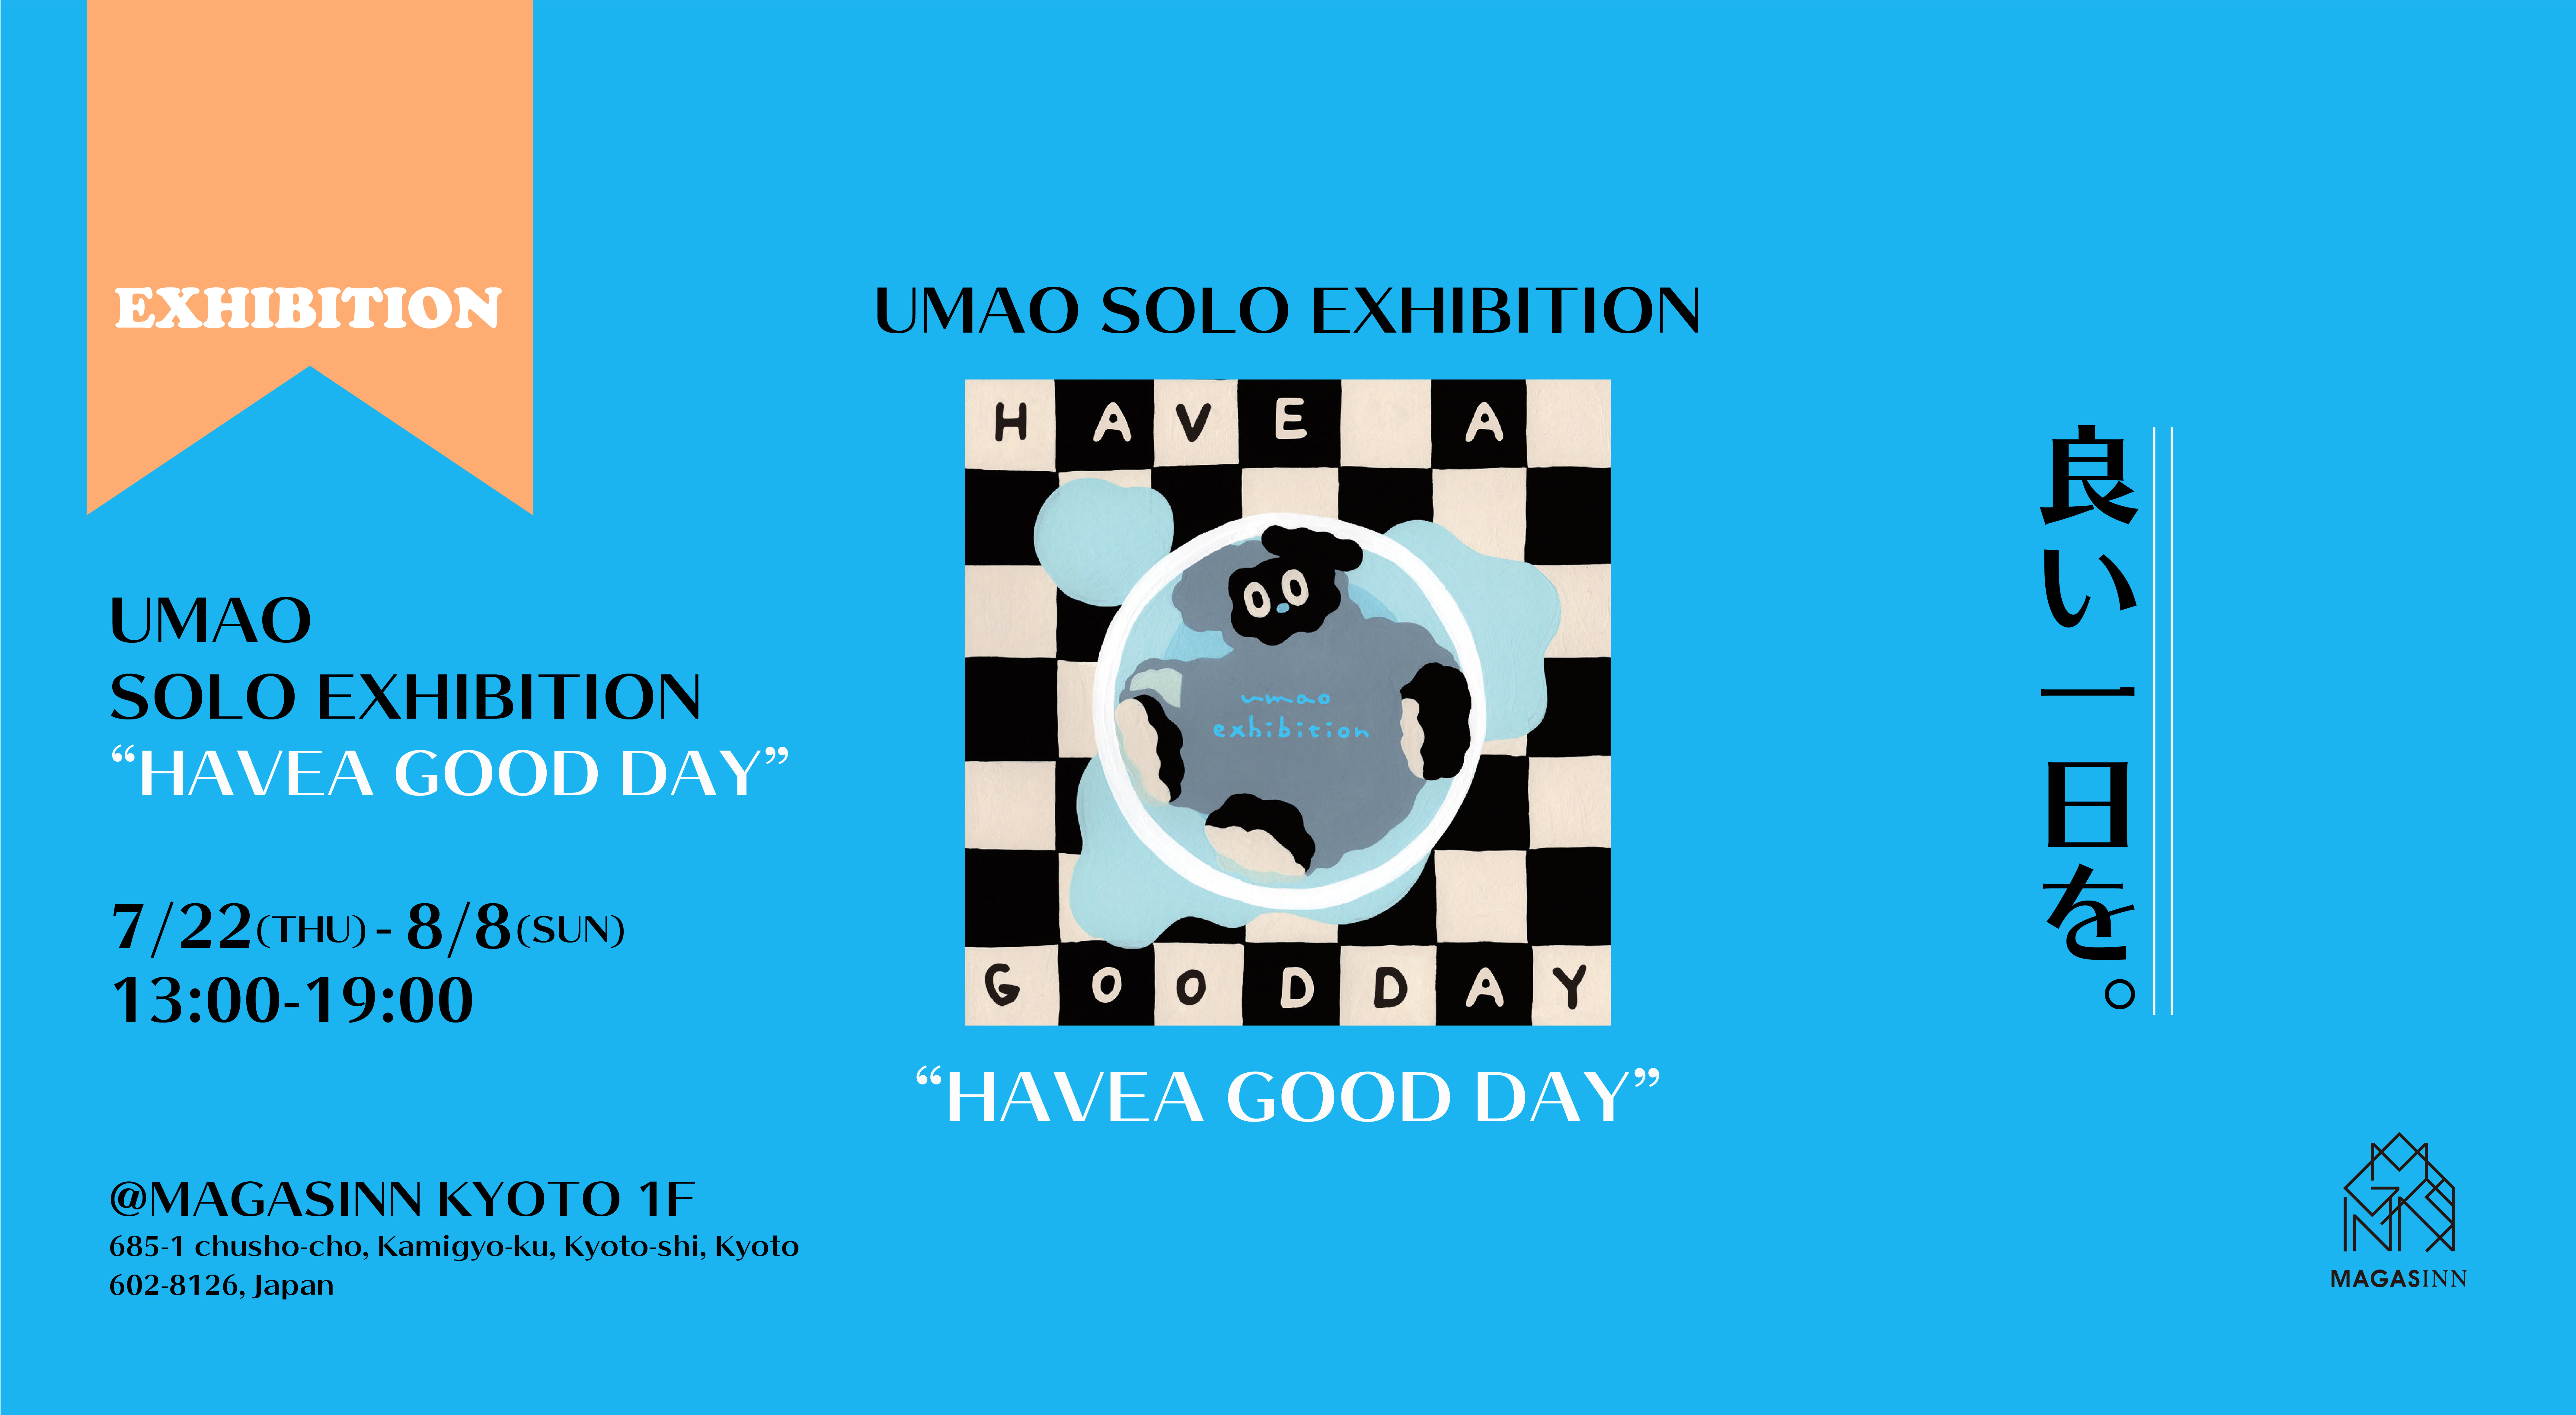 umao solo exhibition 「 HAVE A GOOD DAY」を開催します。